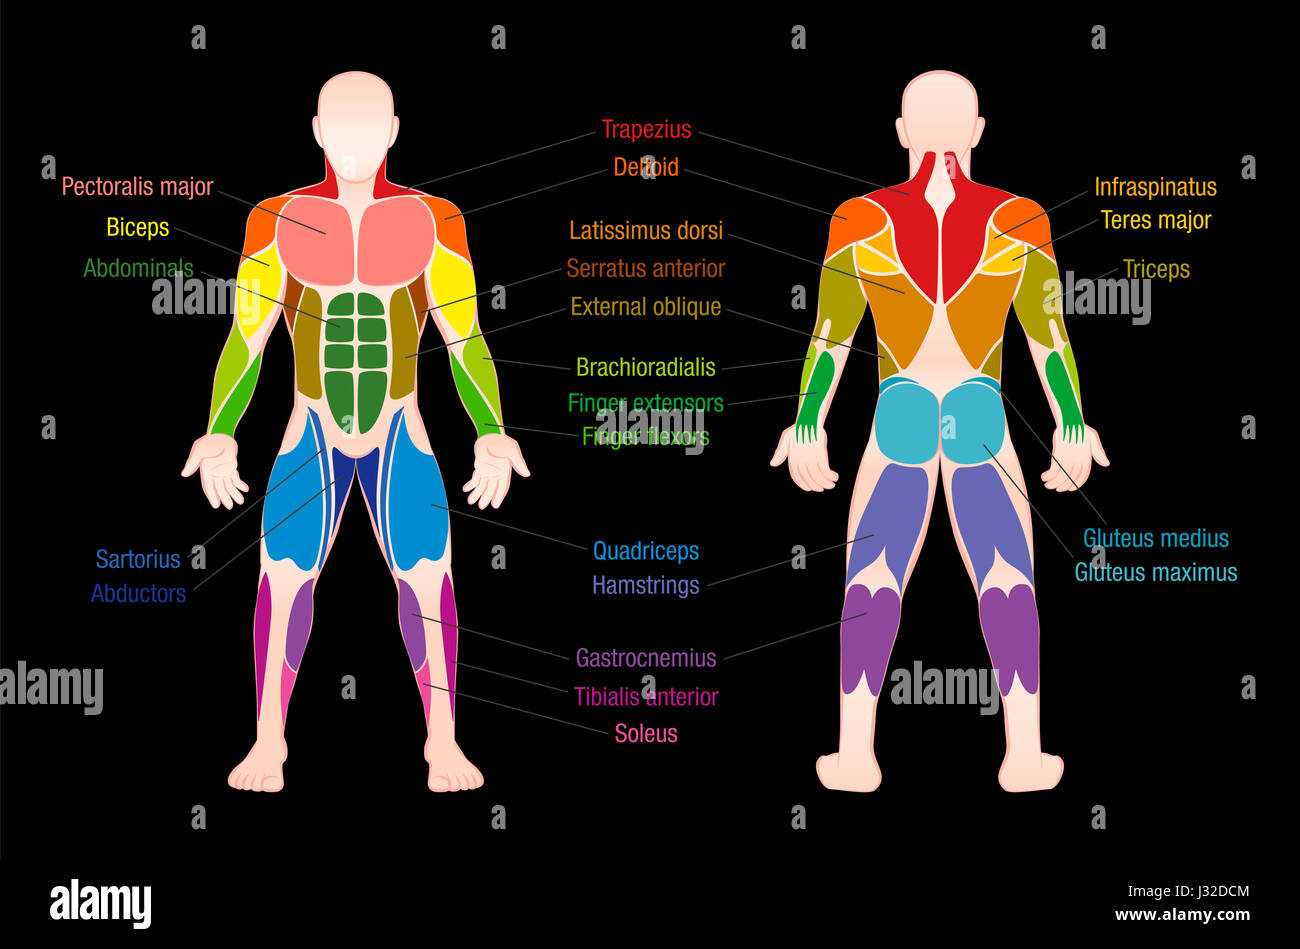 Muscle Chart With Most Important Muscles Of The Human Body